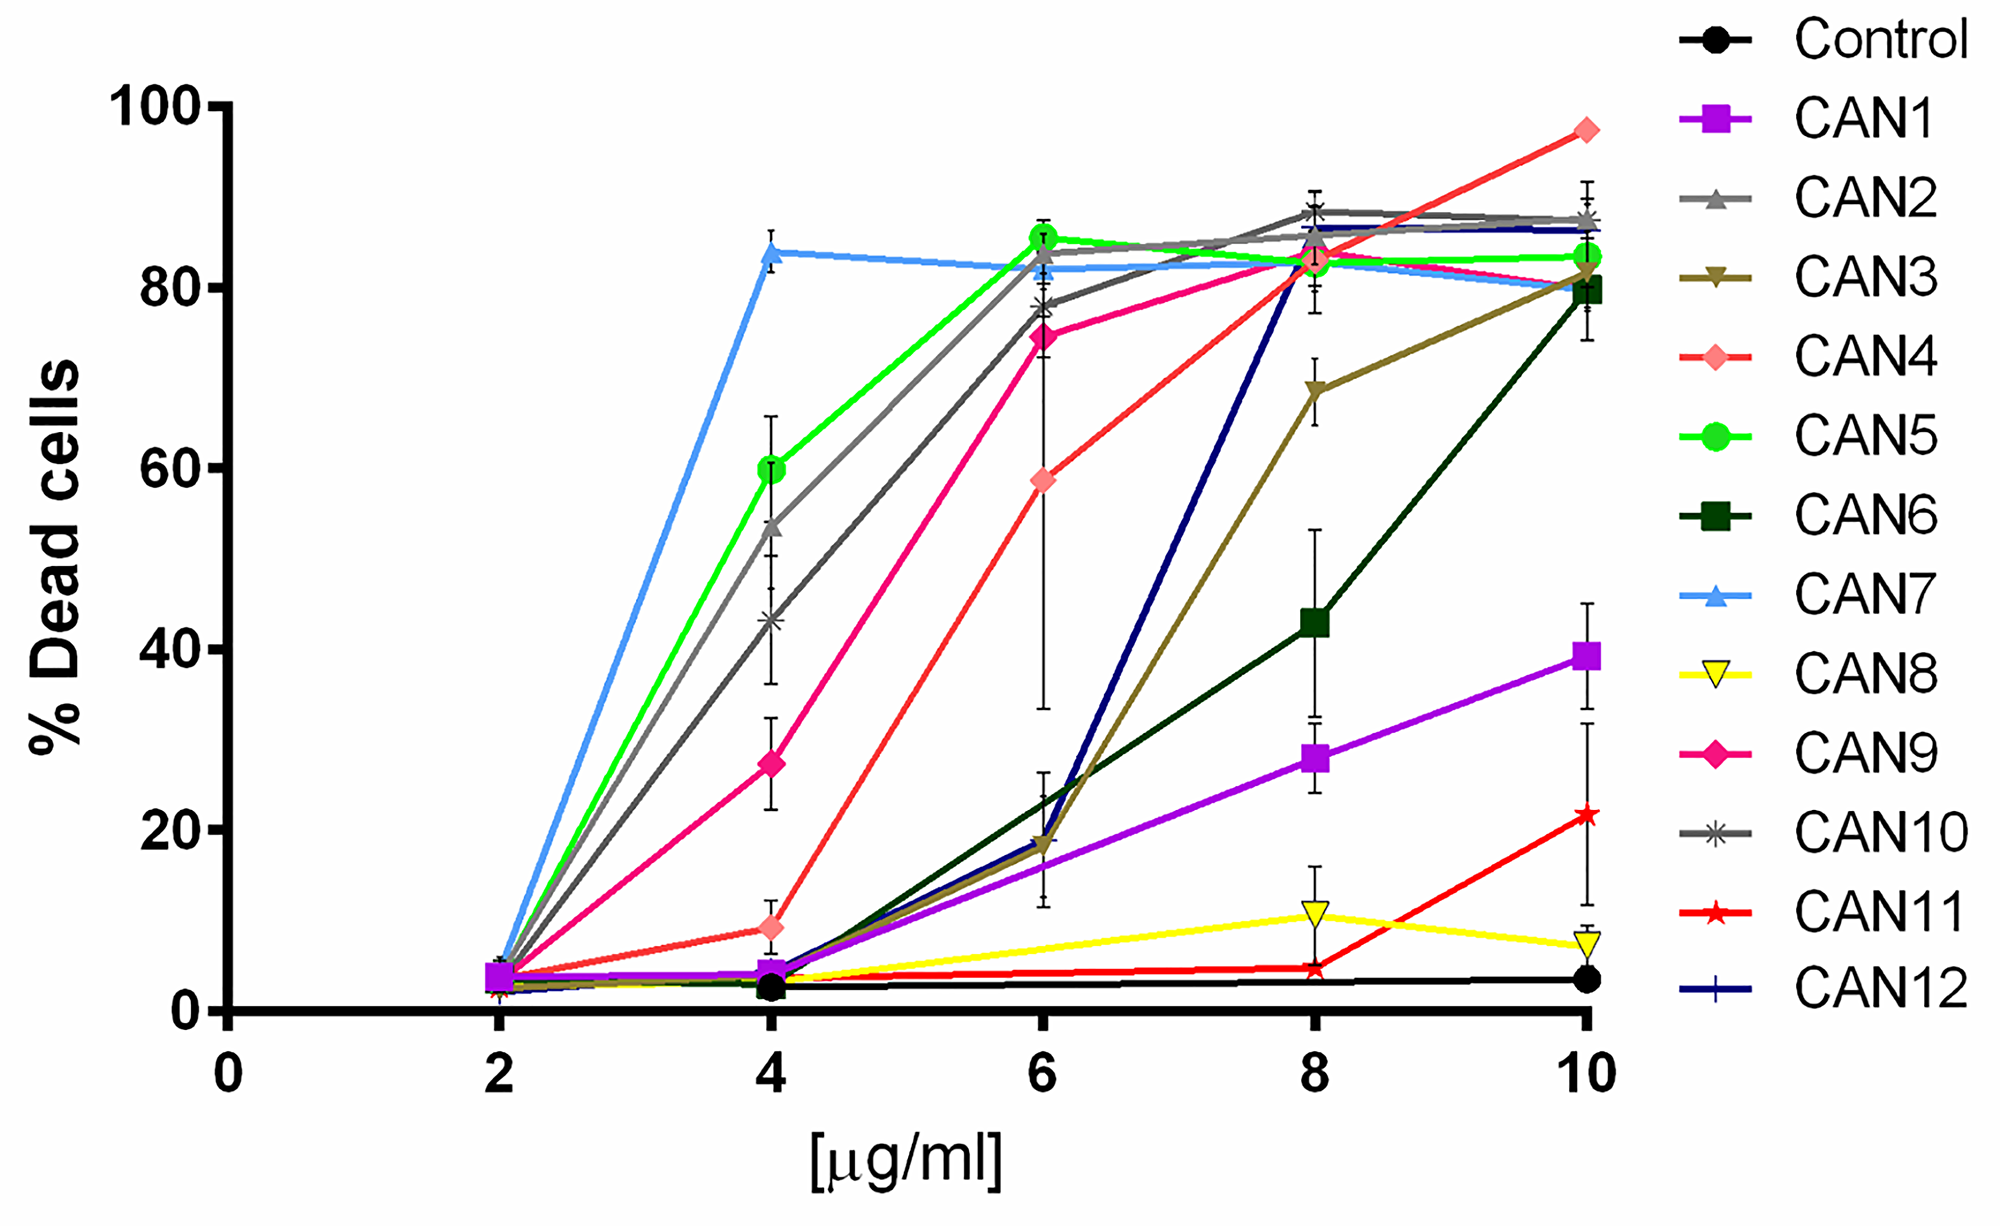 The effect of various Cannabis extracts on the survival of cancer cells.